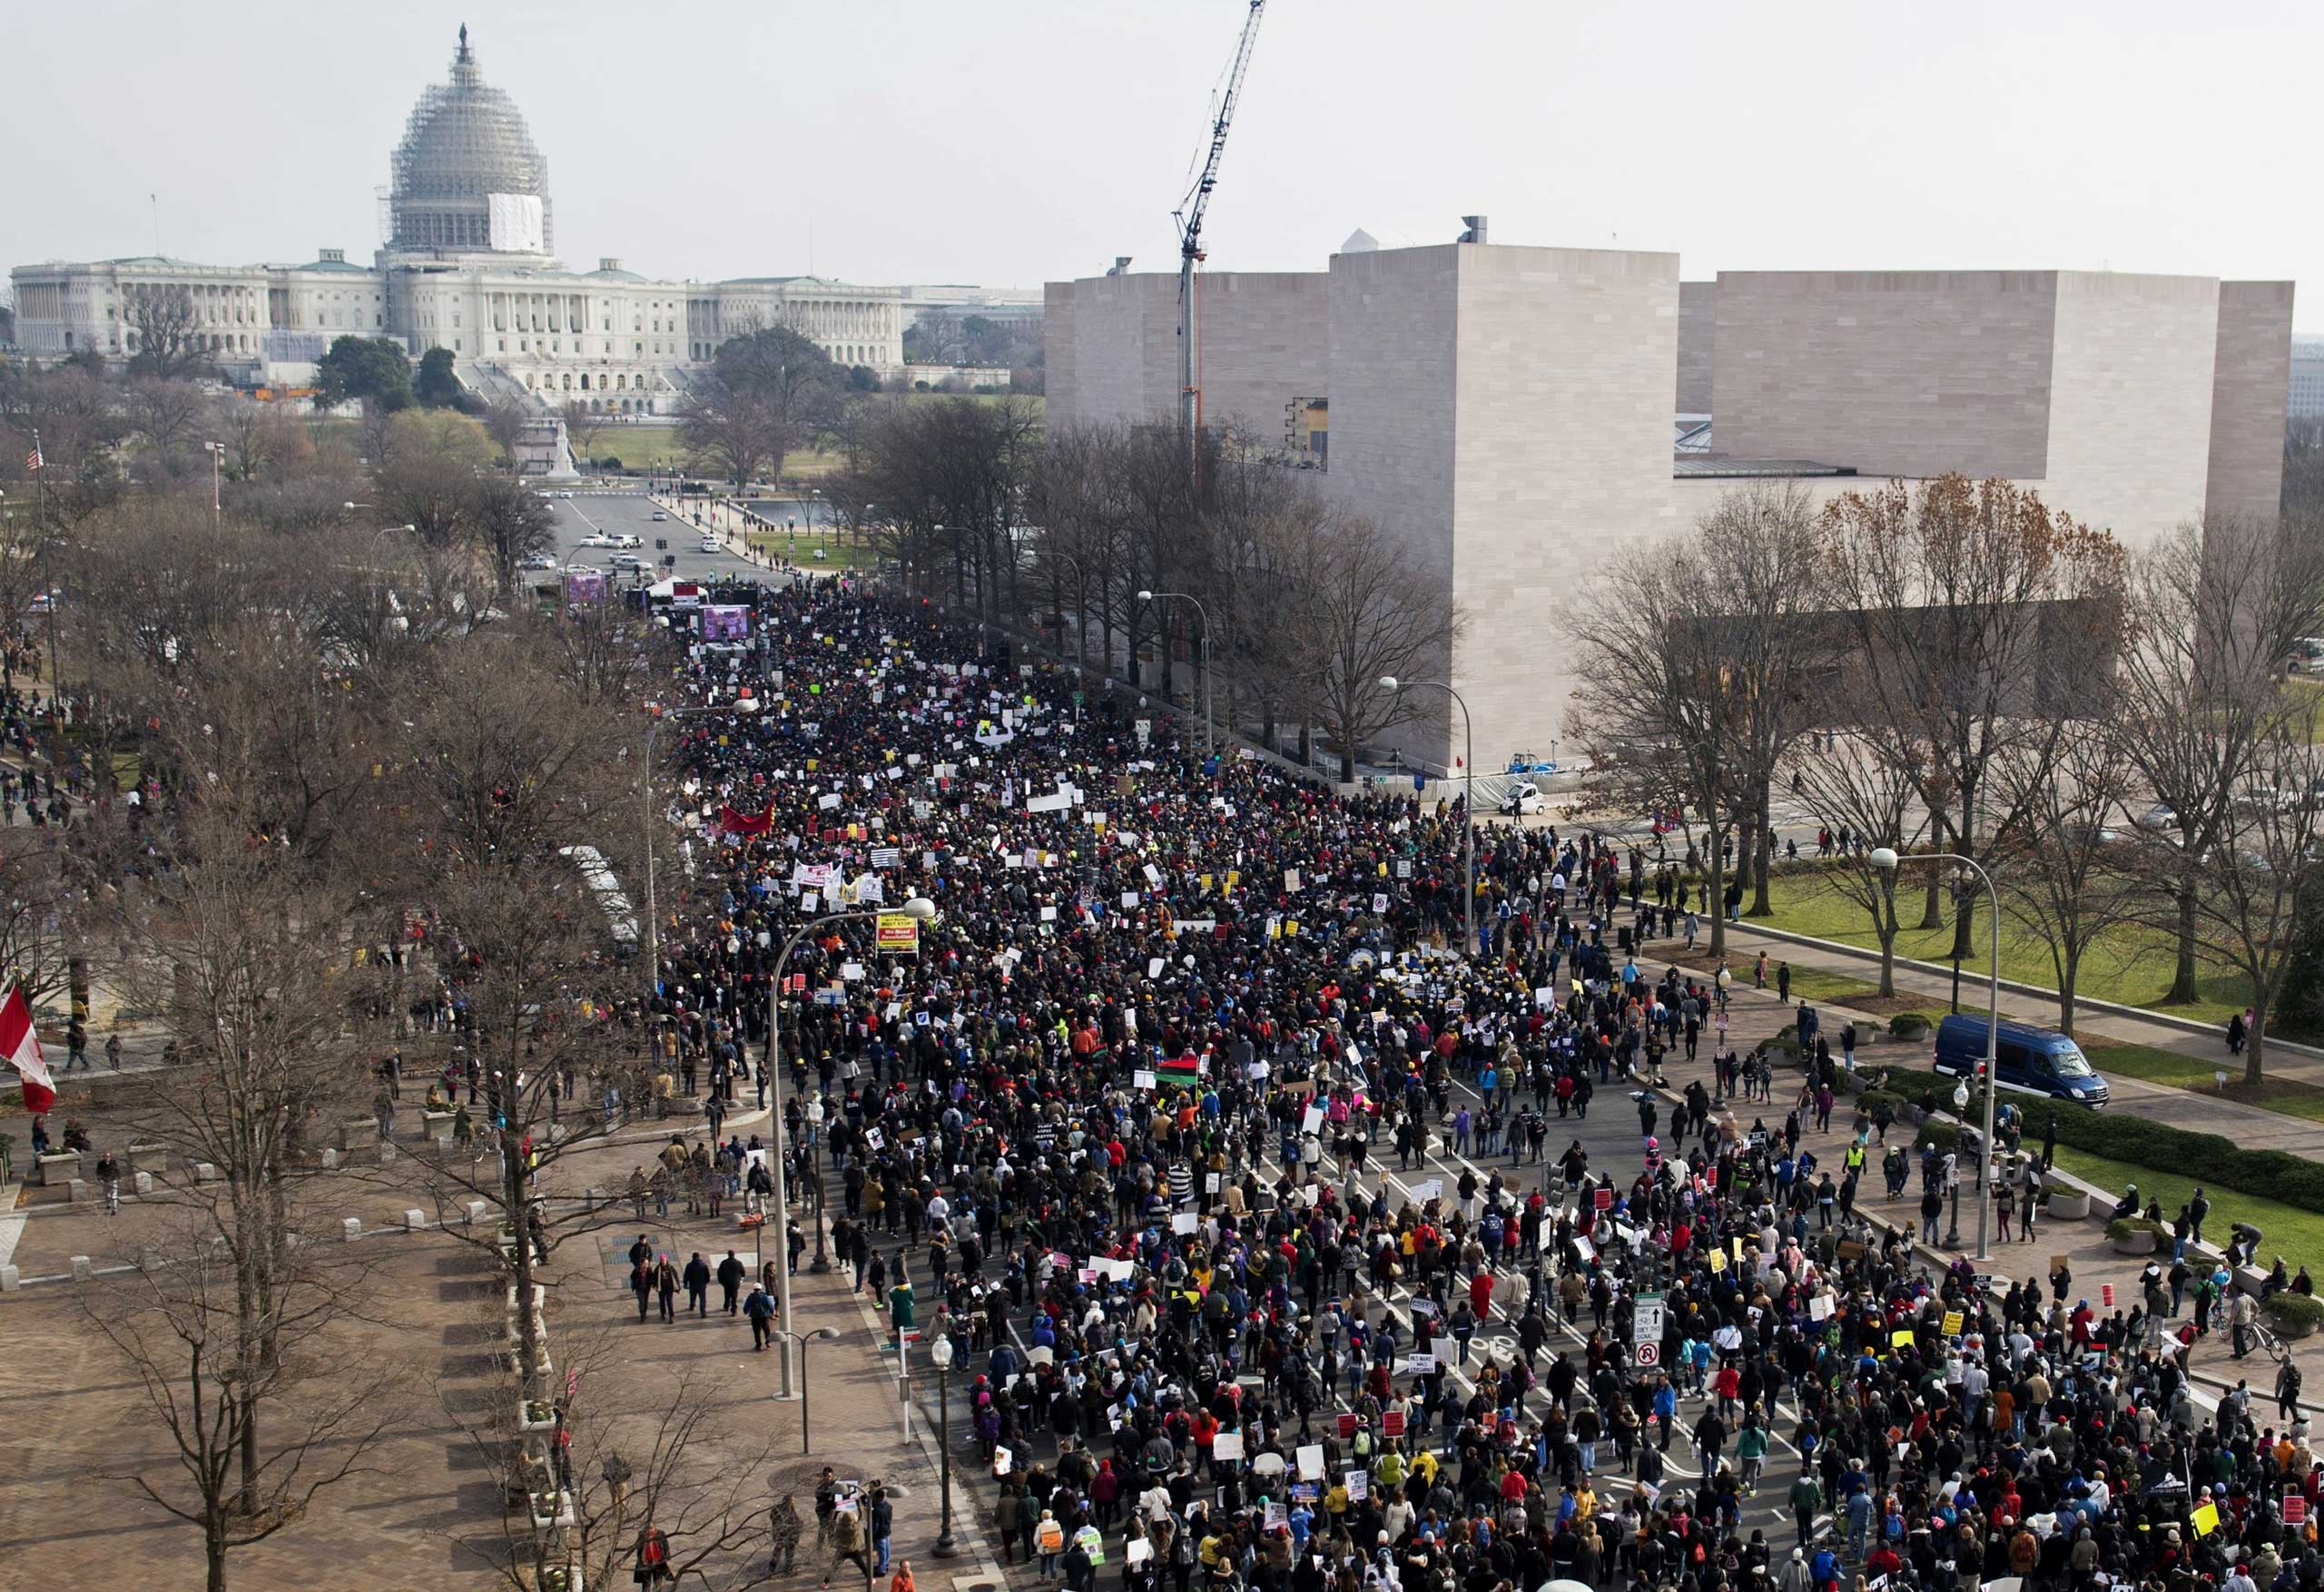 """Thousands take part in the """"Justice for All"""" march and rally down Pennsylvania Avenue to the U.S. Capitol in Washington D.C. on Dec. 13, 2014."""